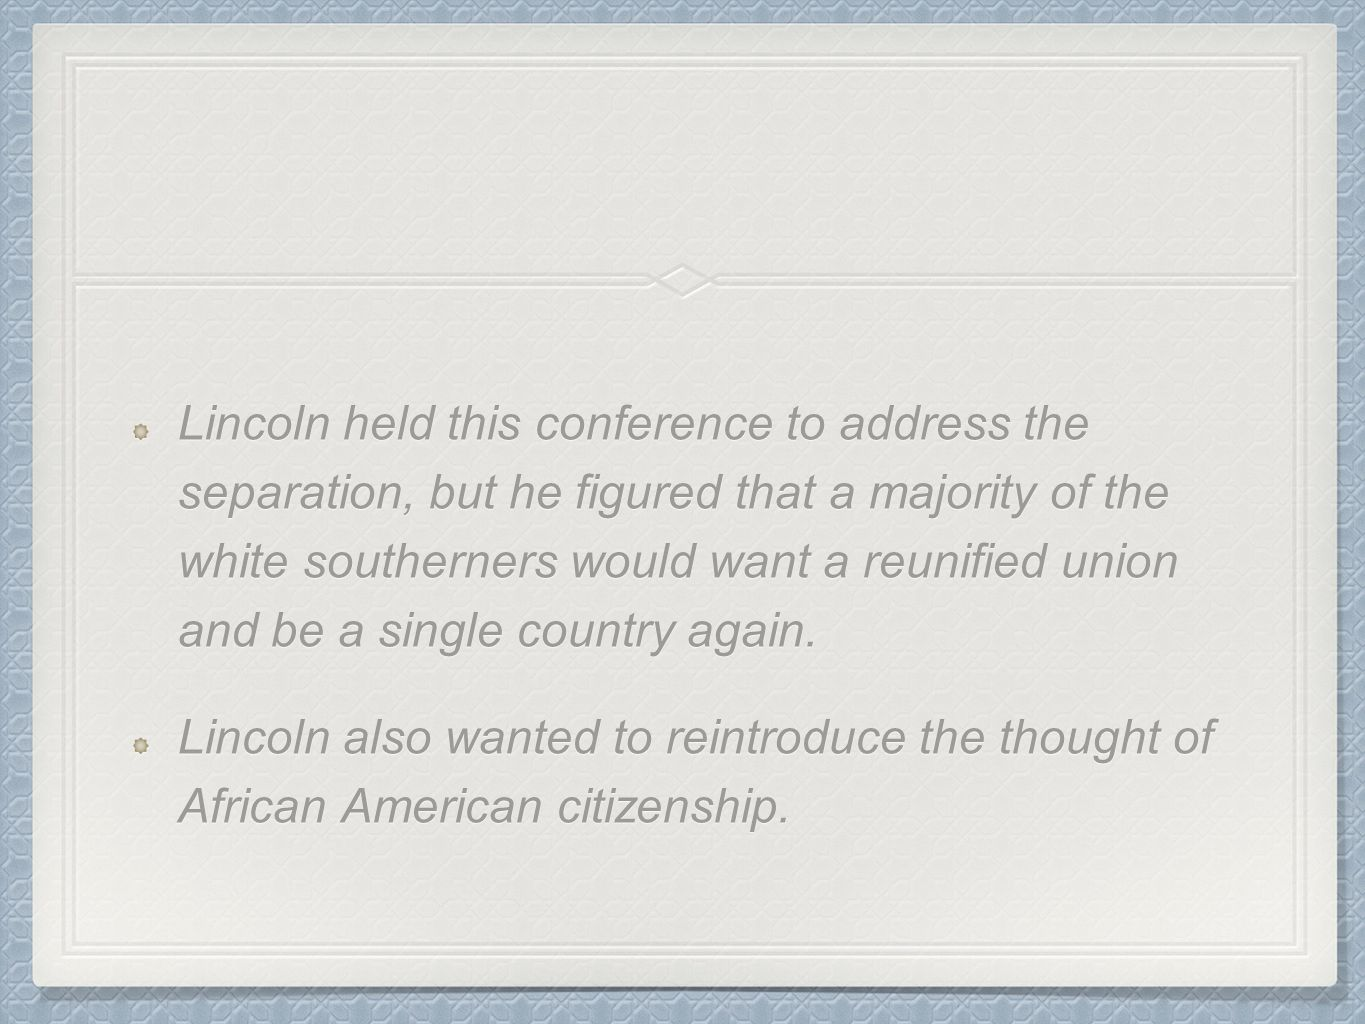 Lincoln held this conference to address the separation, but he figured that a majority of the white southerners would want a reunified union and be a single country again.